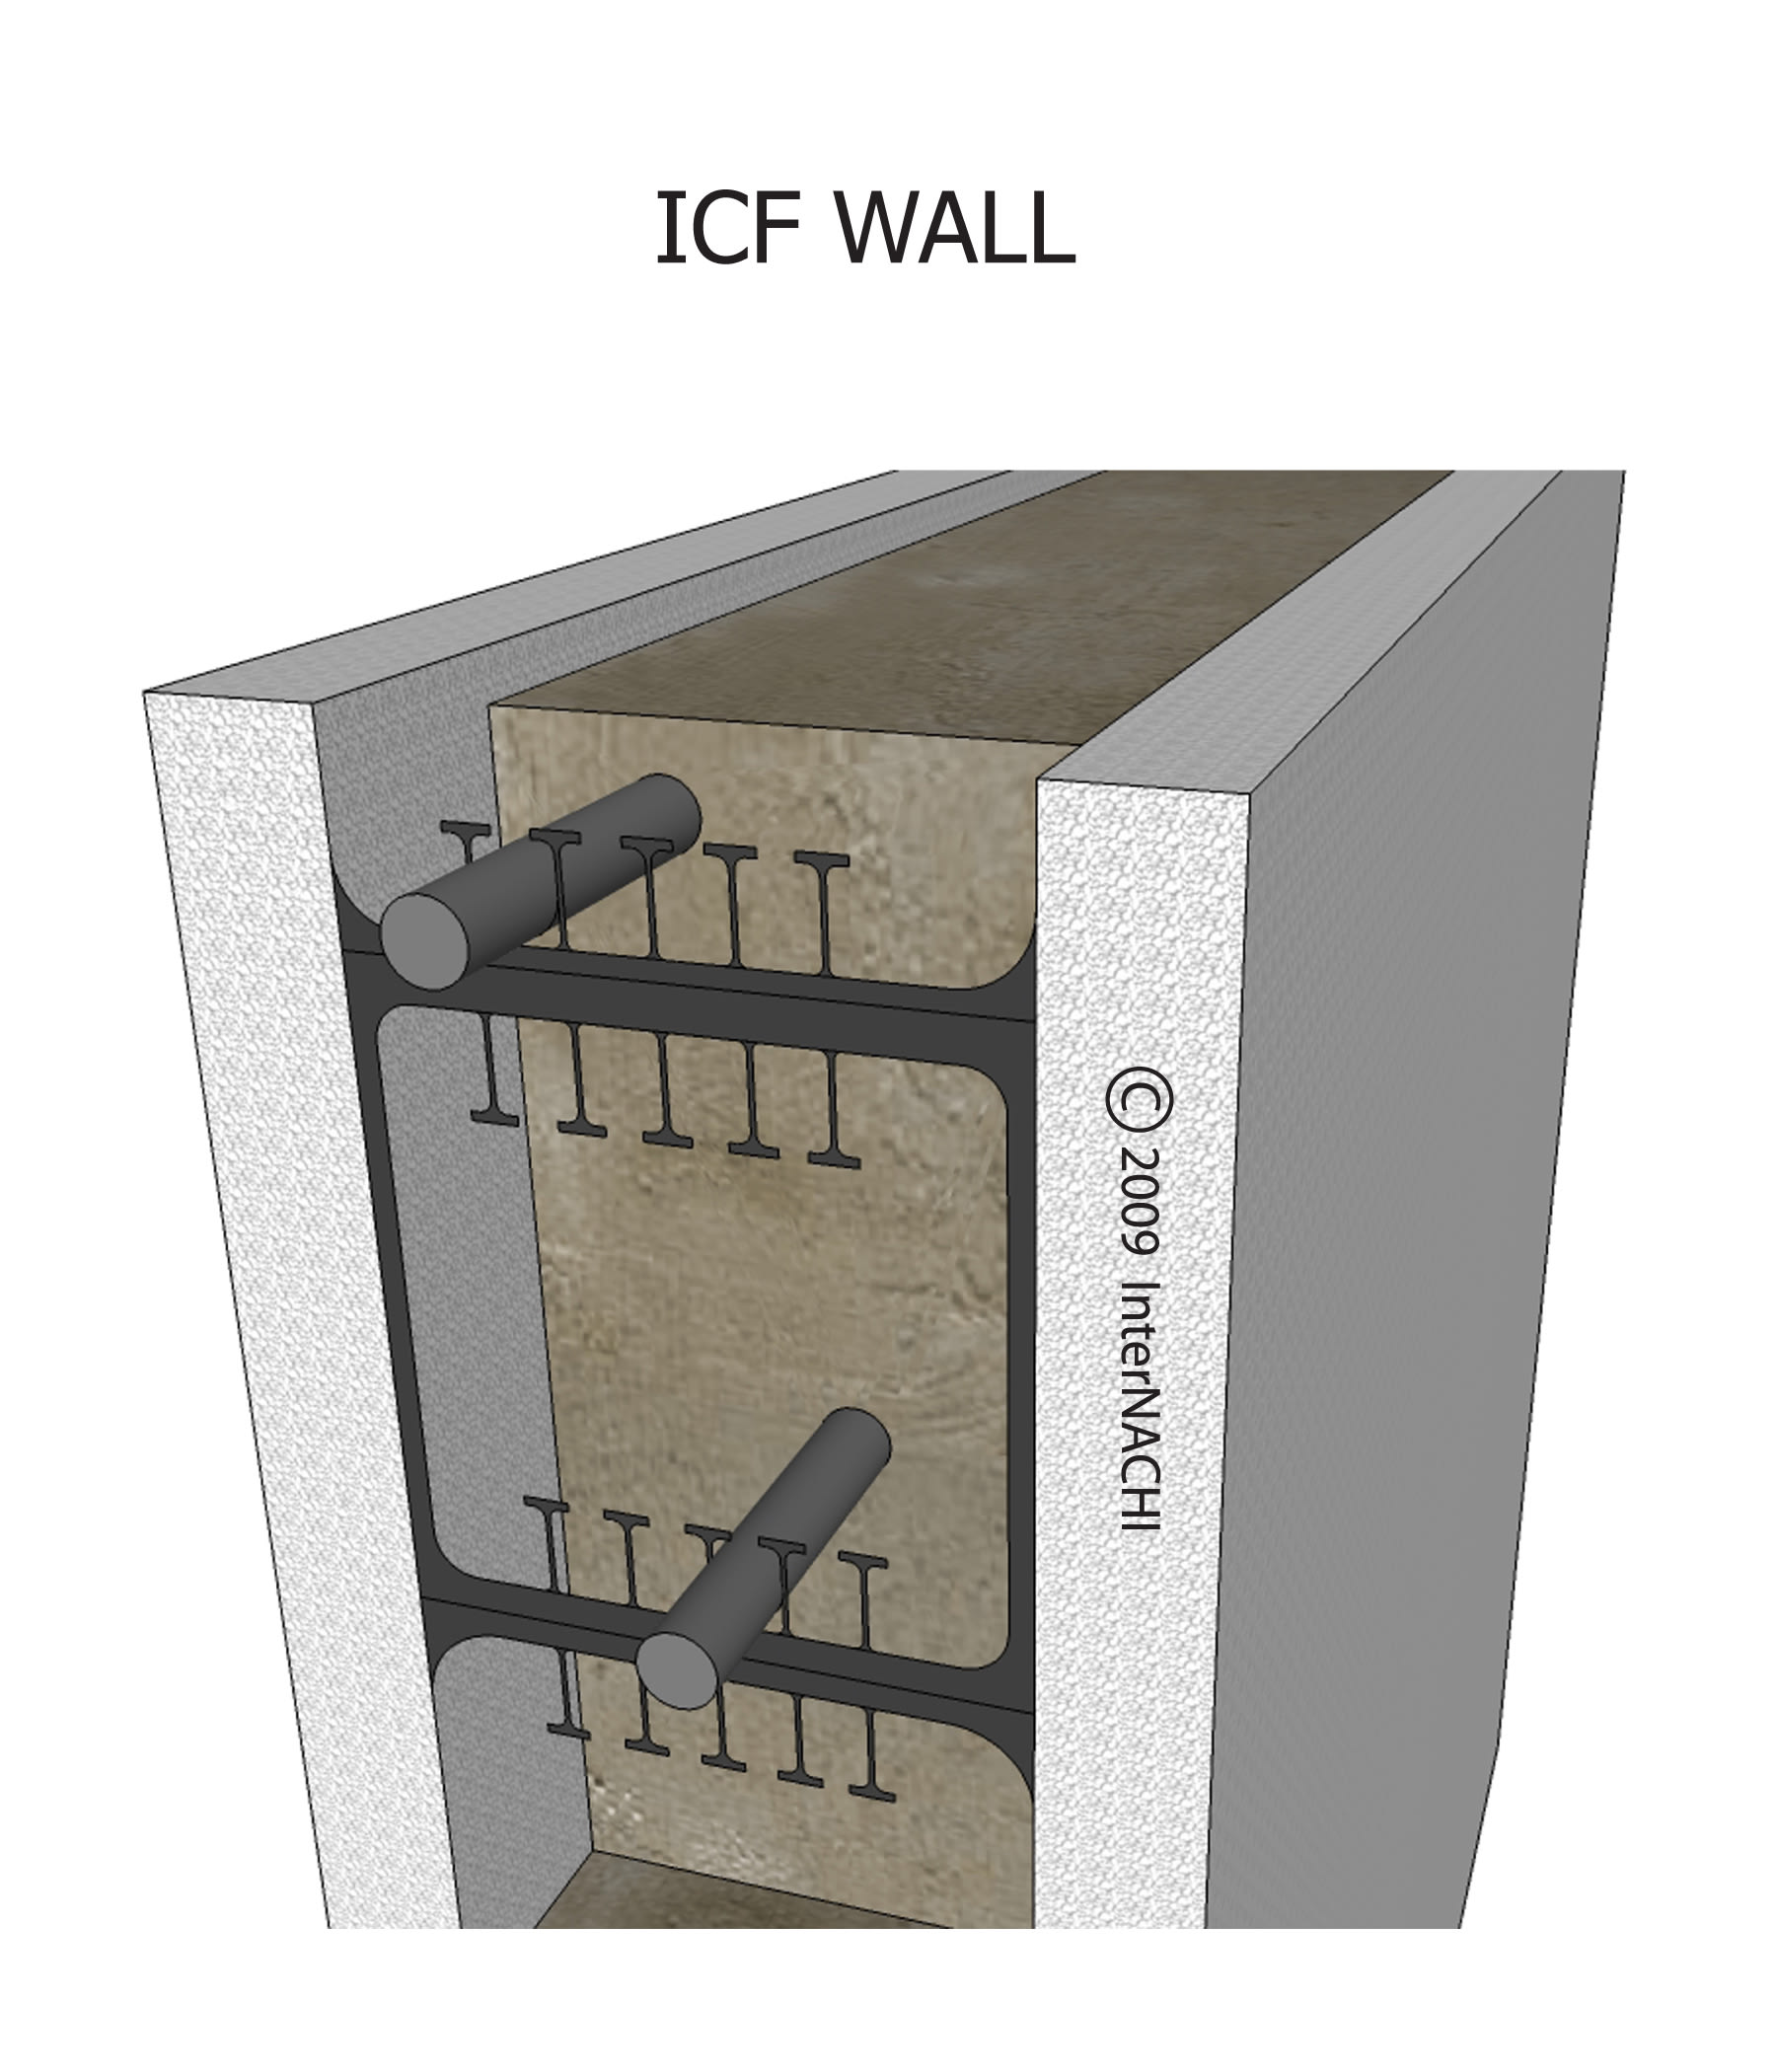 Insulated concrete form wall.